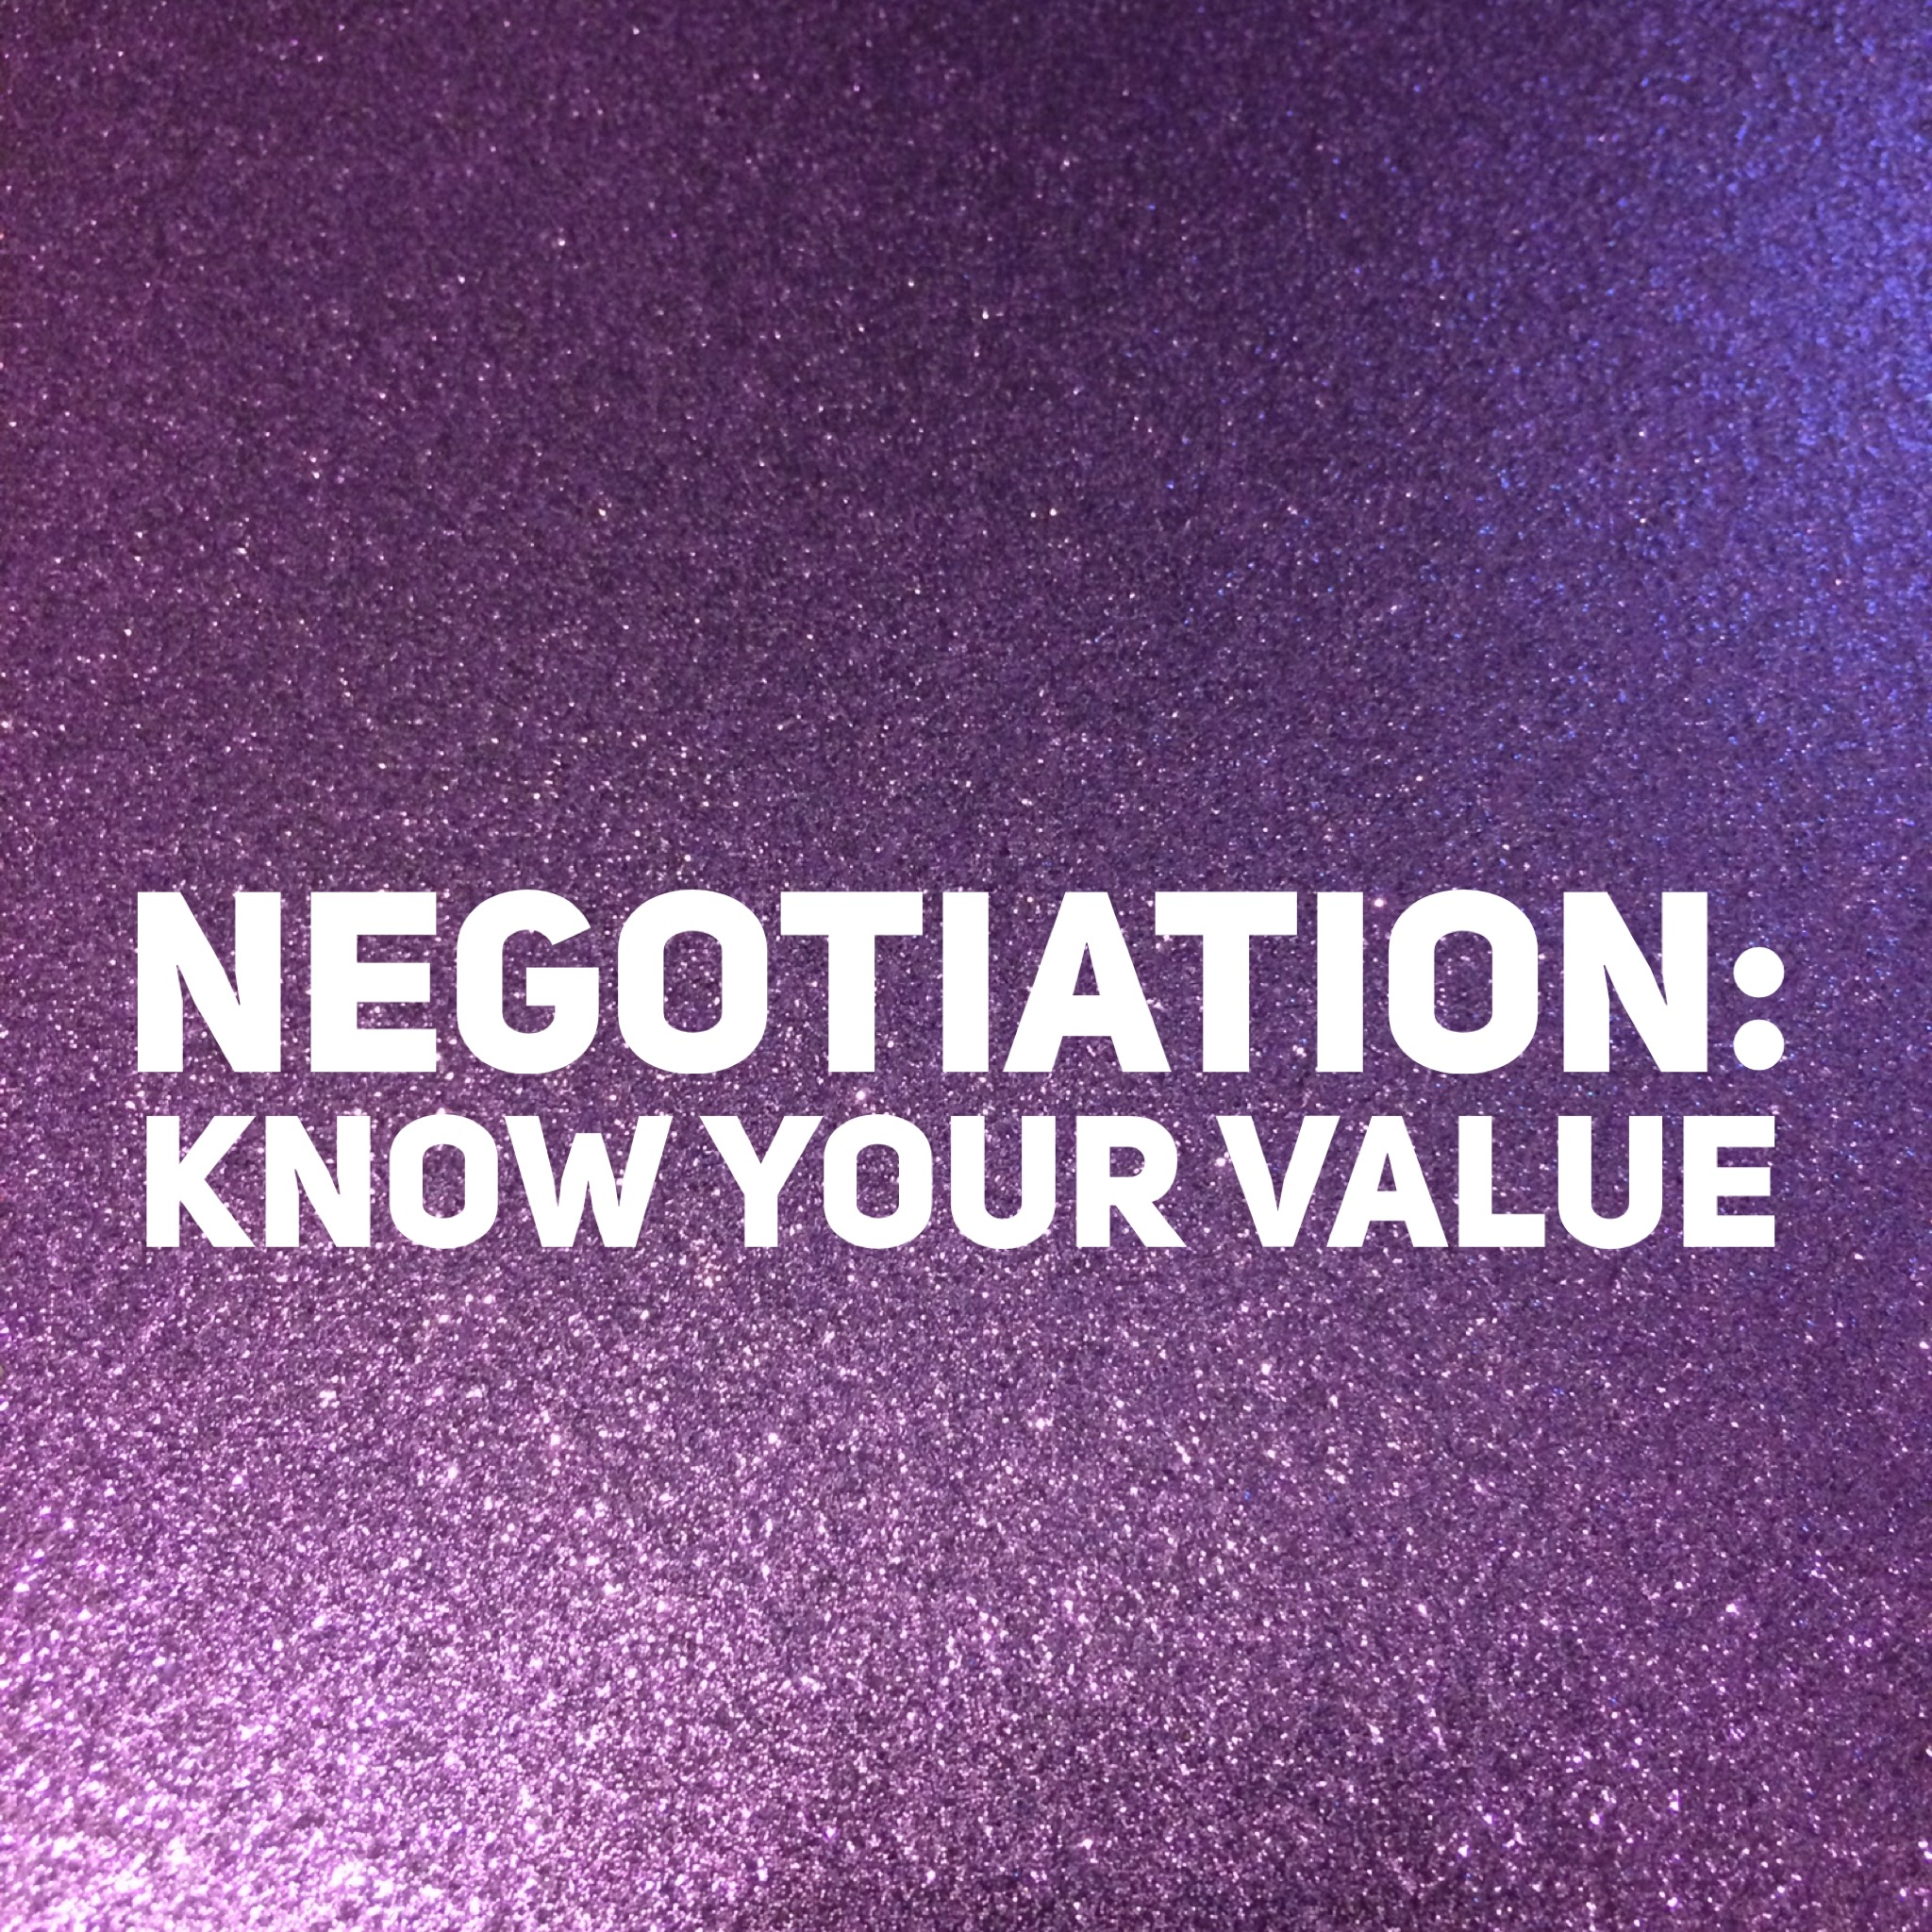 Negotiation-Know-Your-Value-blog-That-Pu